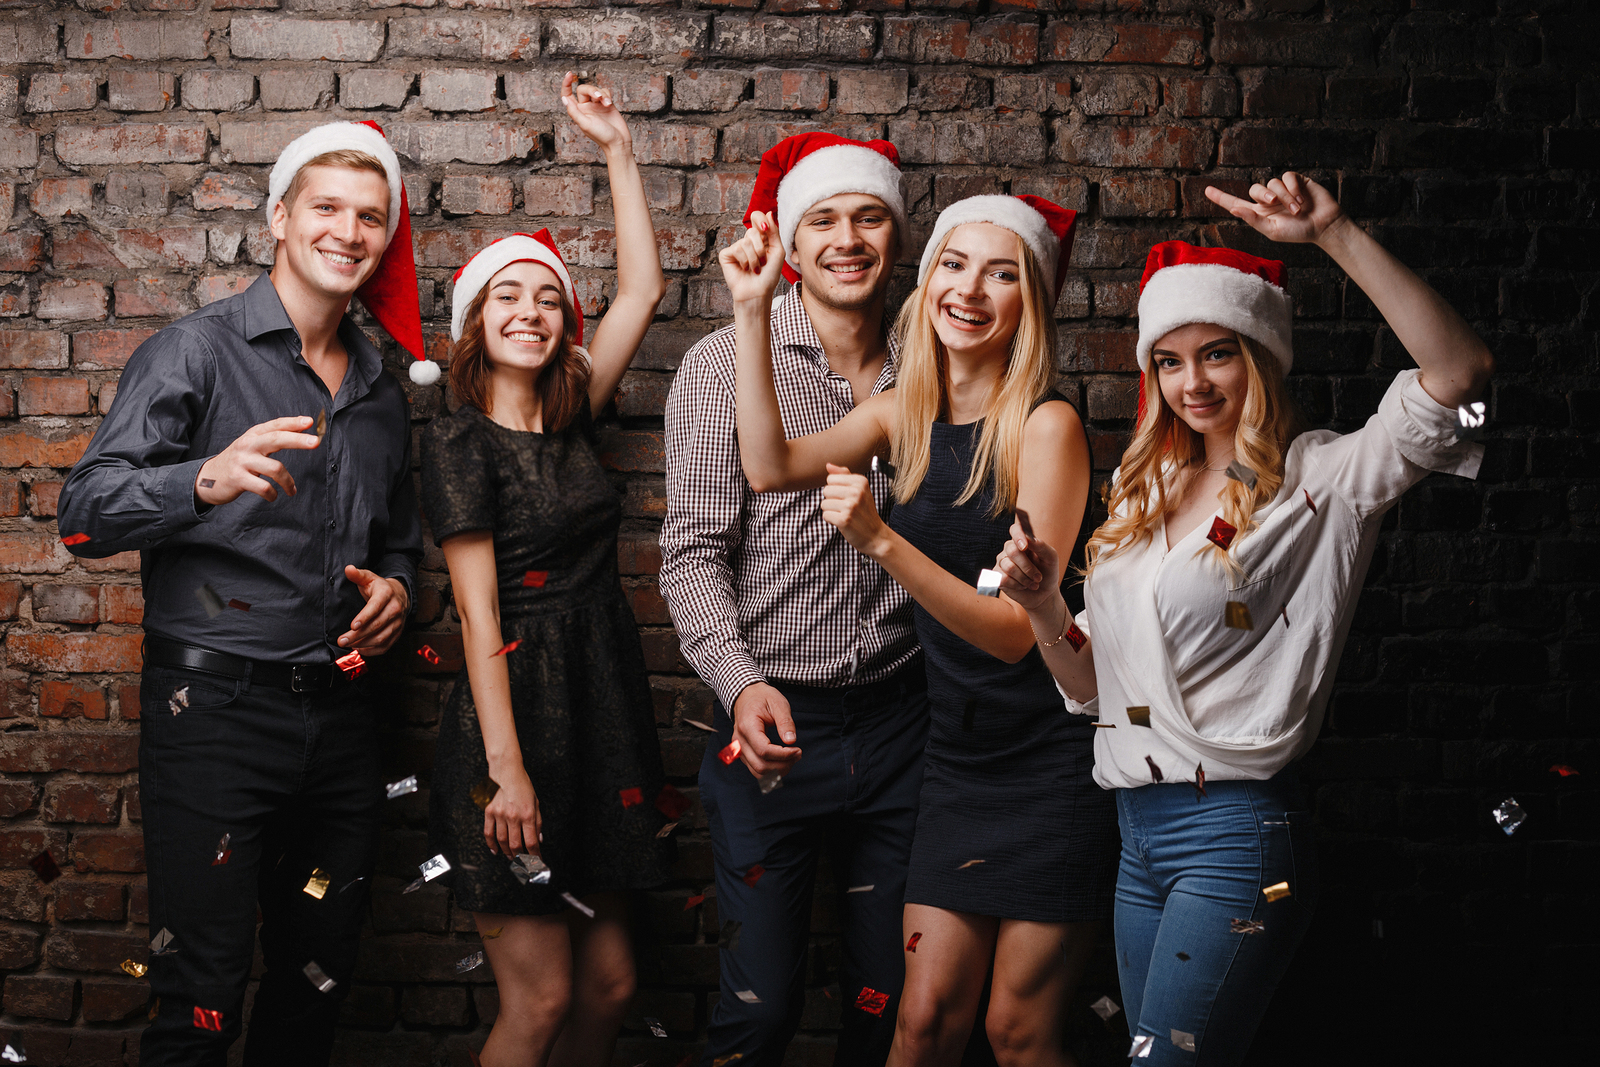 Christmas, Dance Party In Night Club, Holiday, Fun. Happy People